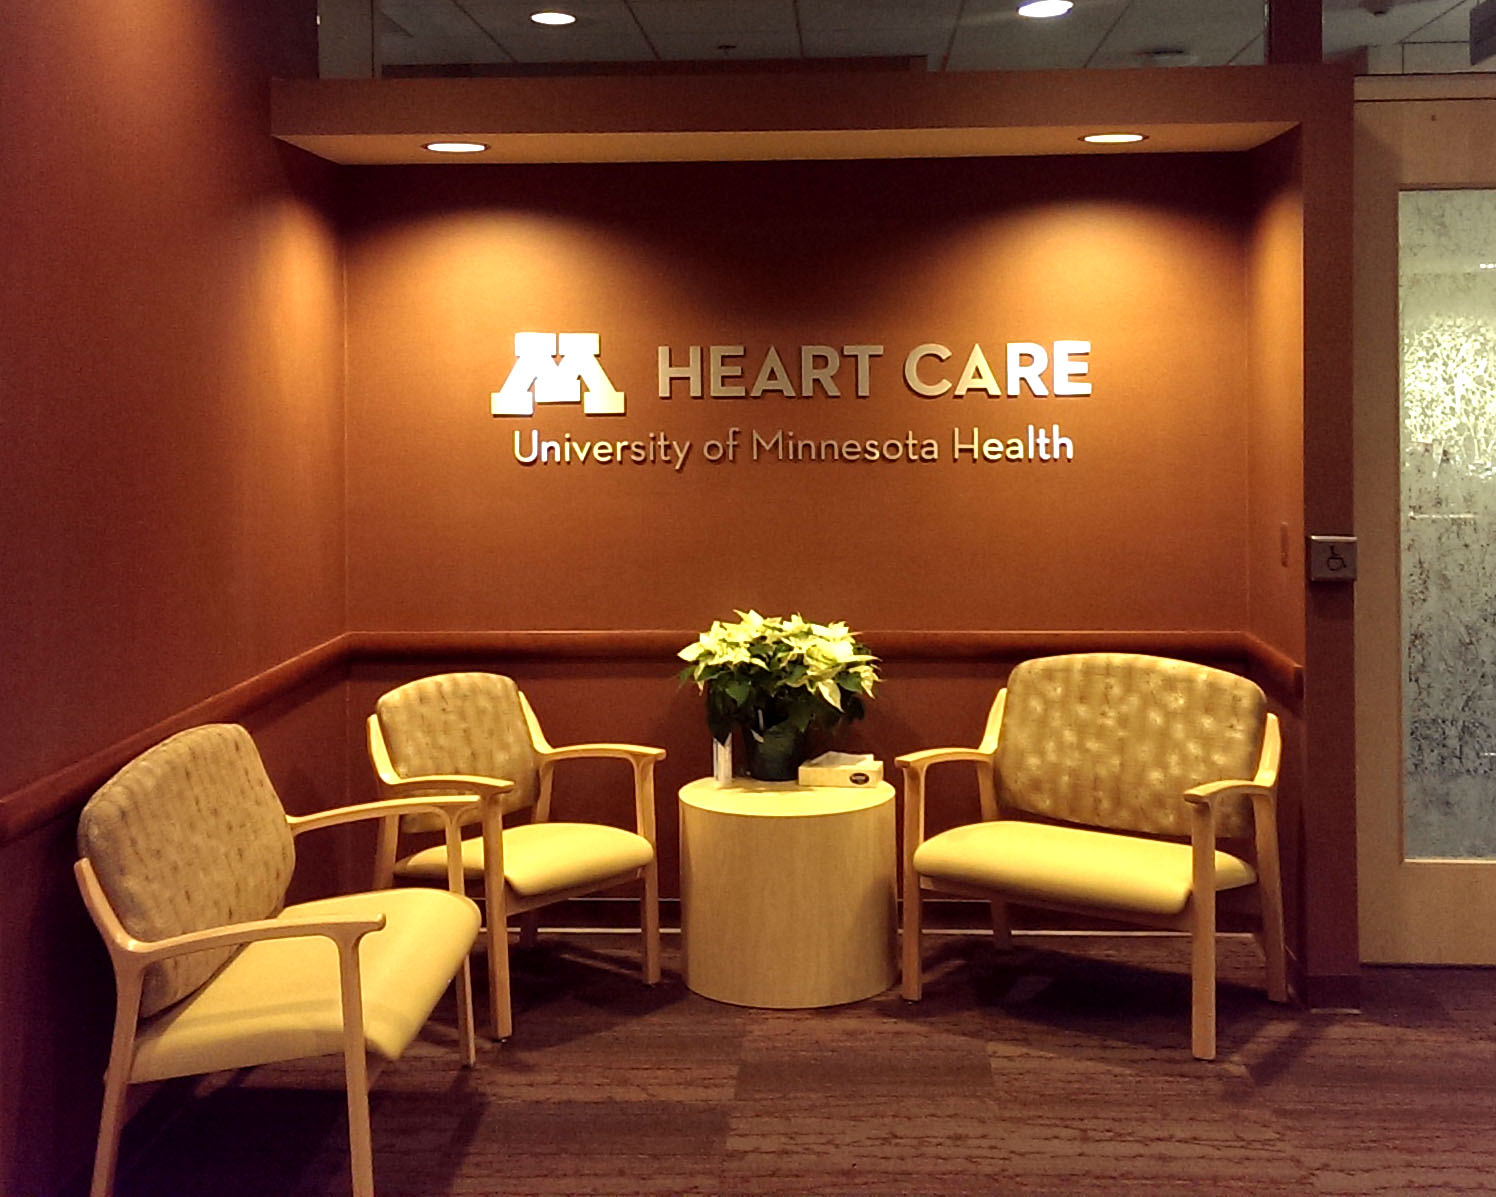 Example of interior medical signage